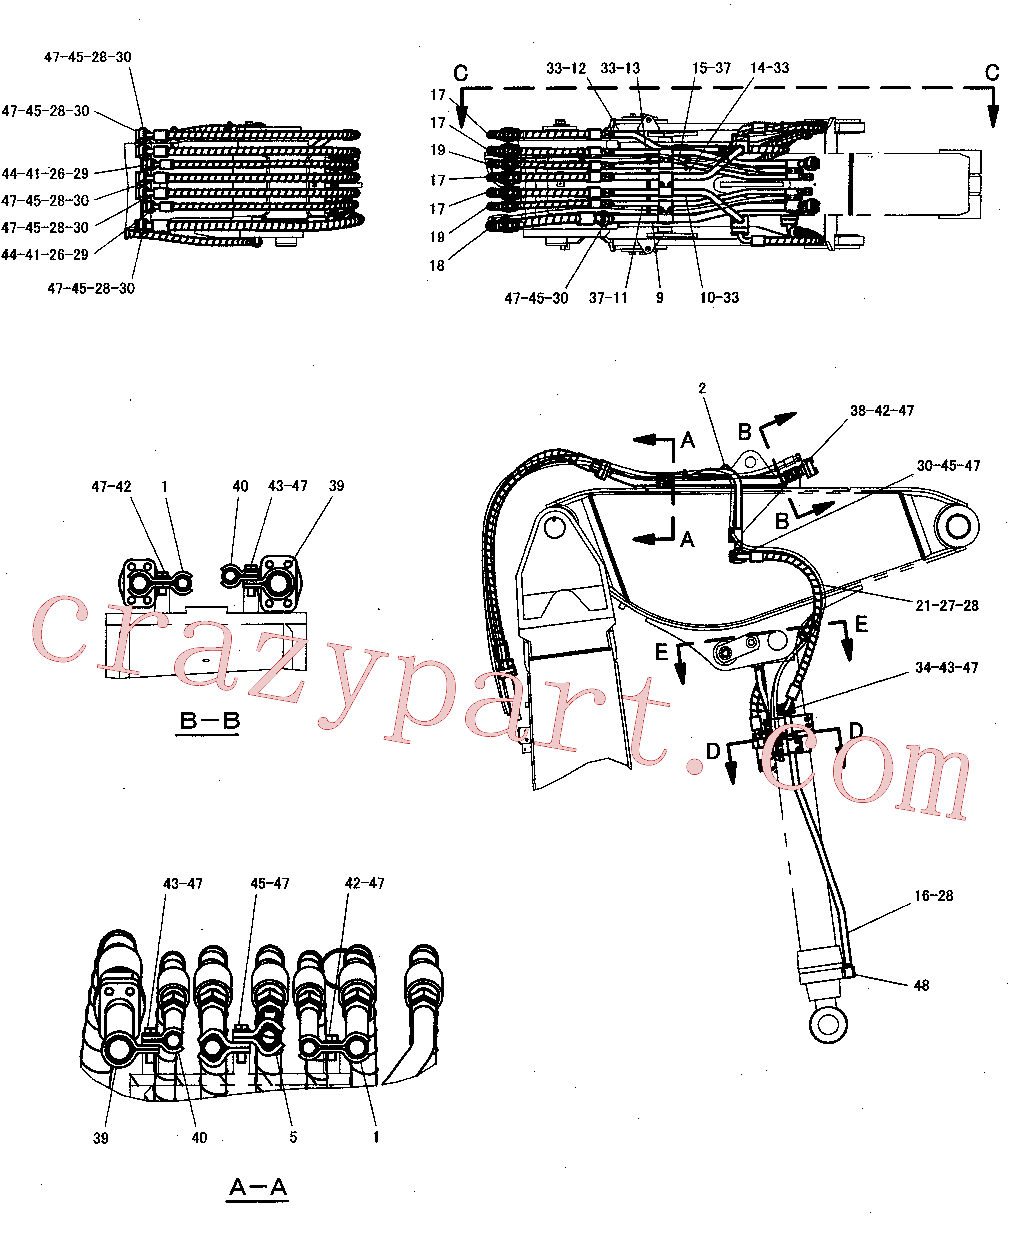 CAT 265-0695 for 345C Excavator(EXC) hydraulic system 300-8170 Assembly